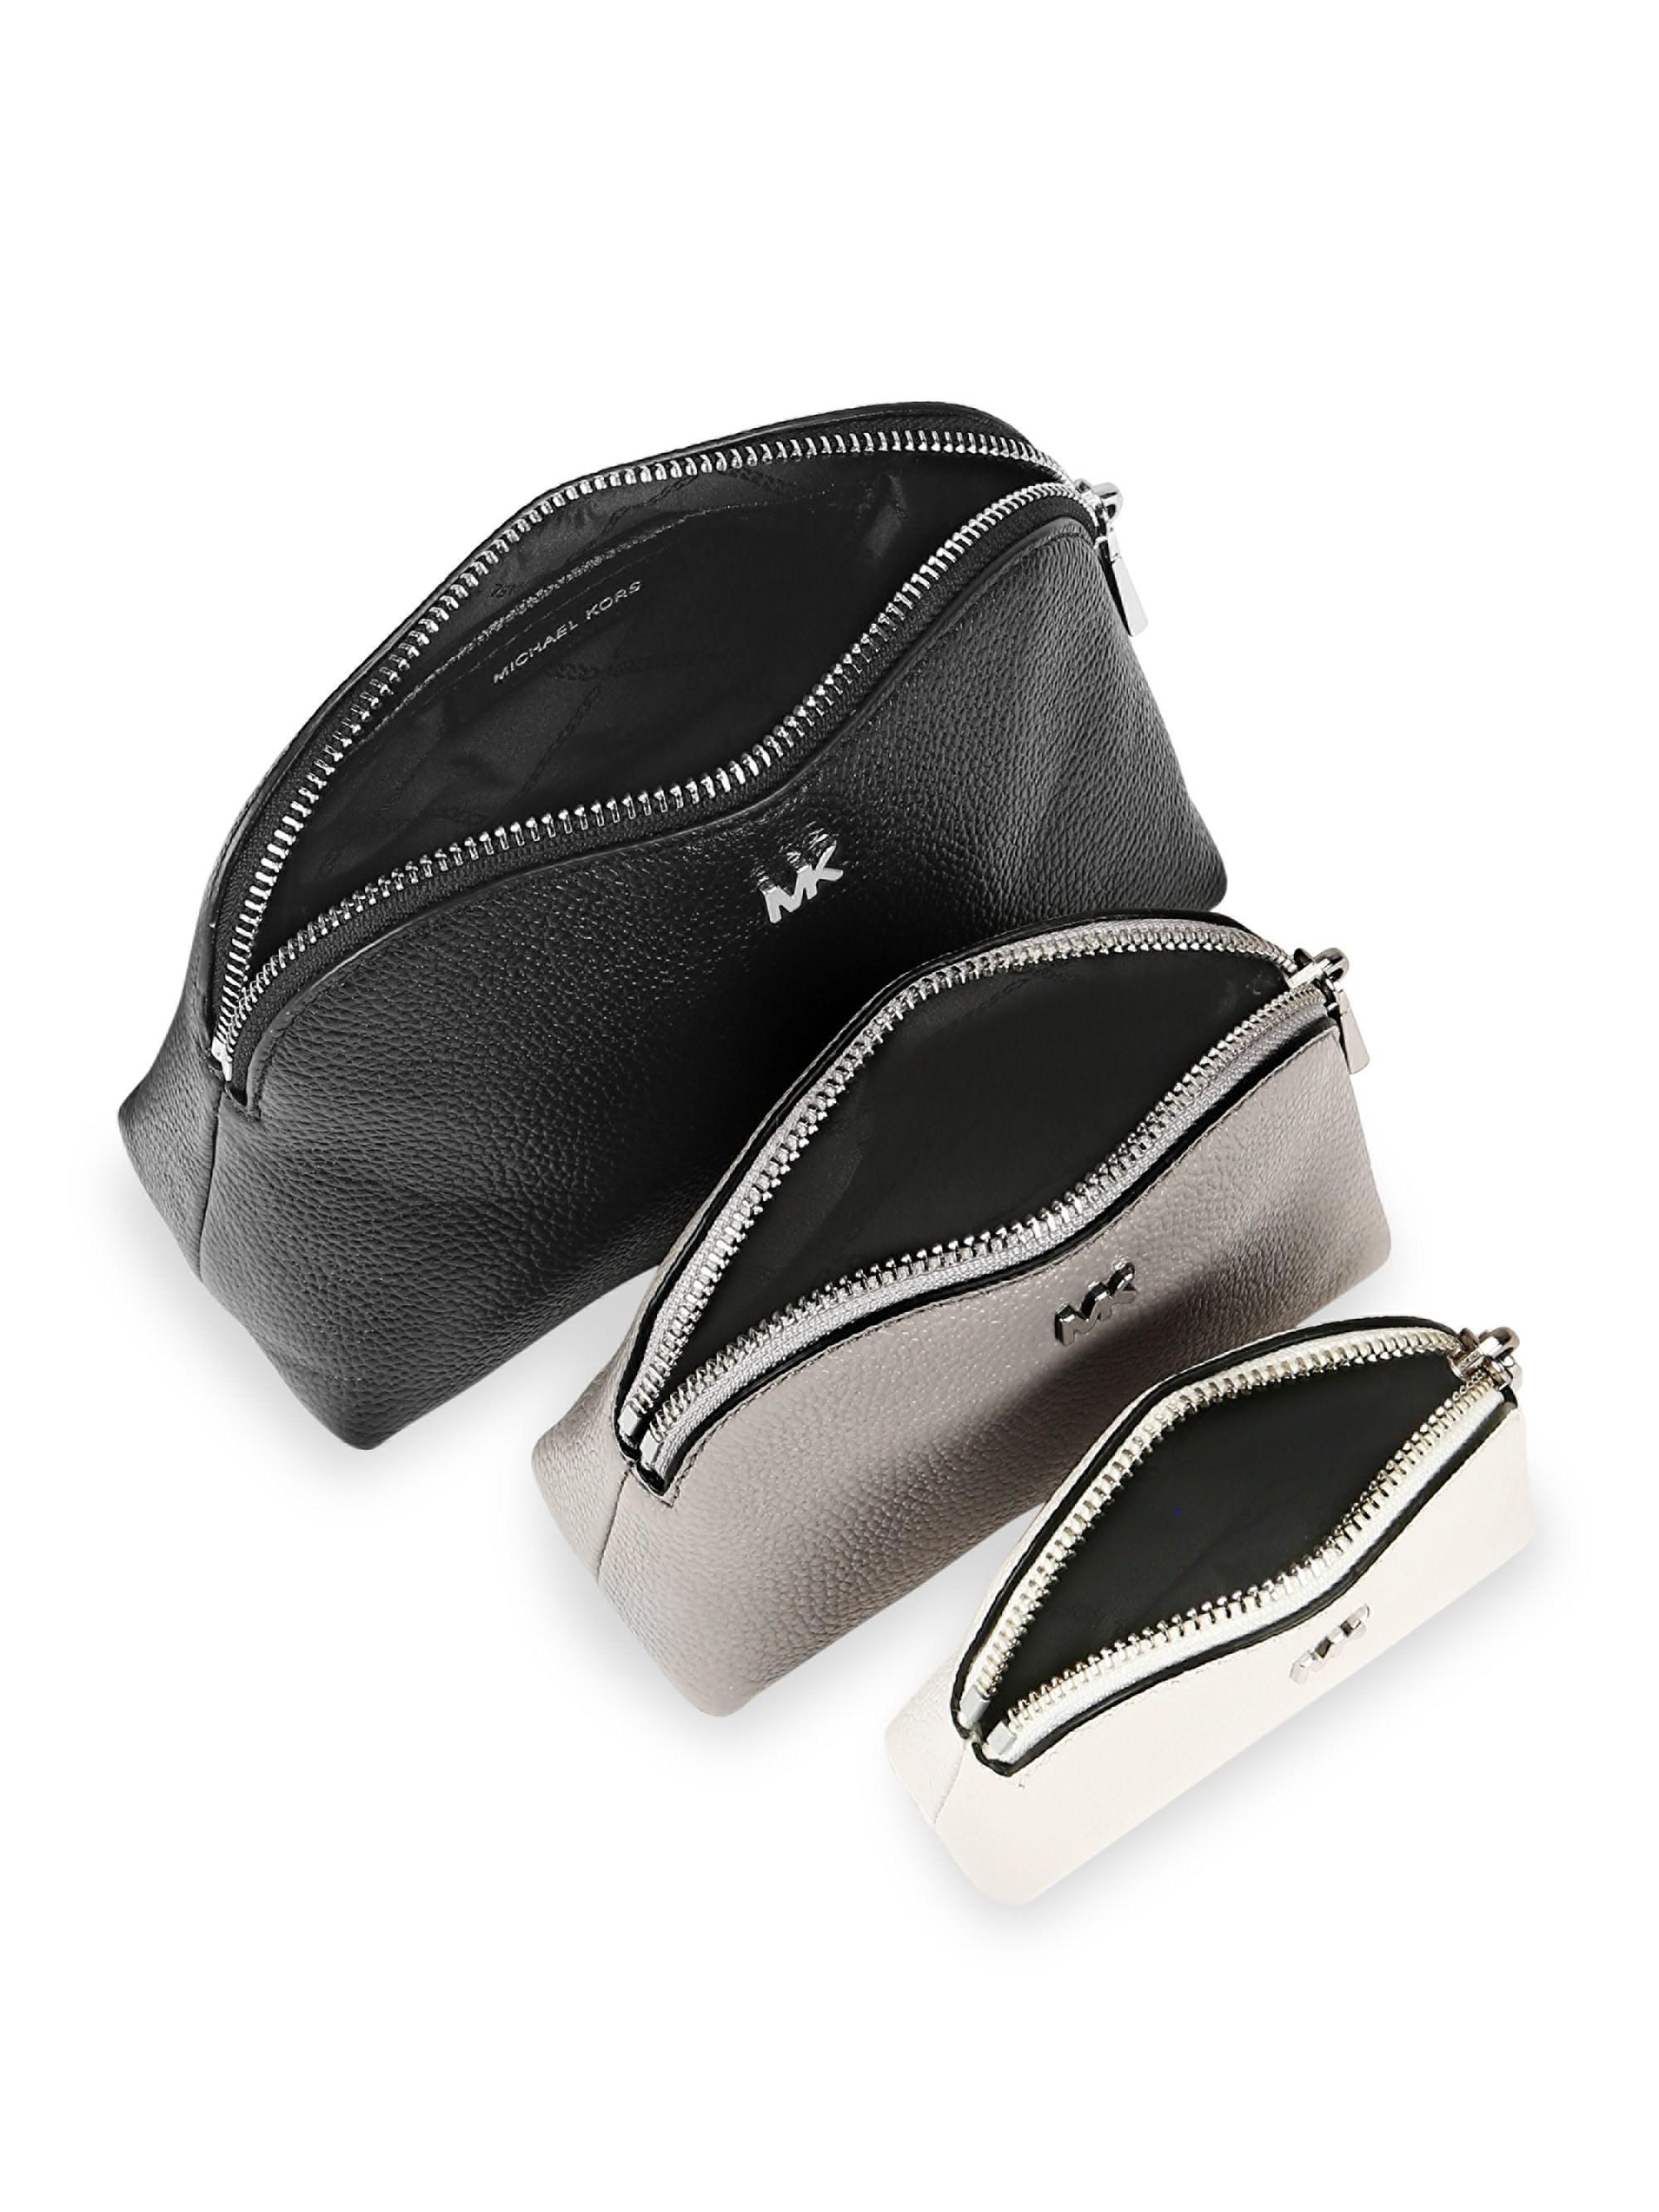 2d39b9e97186 Lyst - Michael Kors Leather Travel Pouch Trio in Black